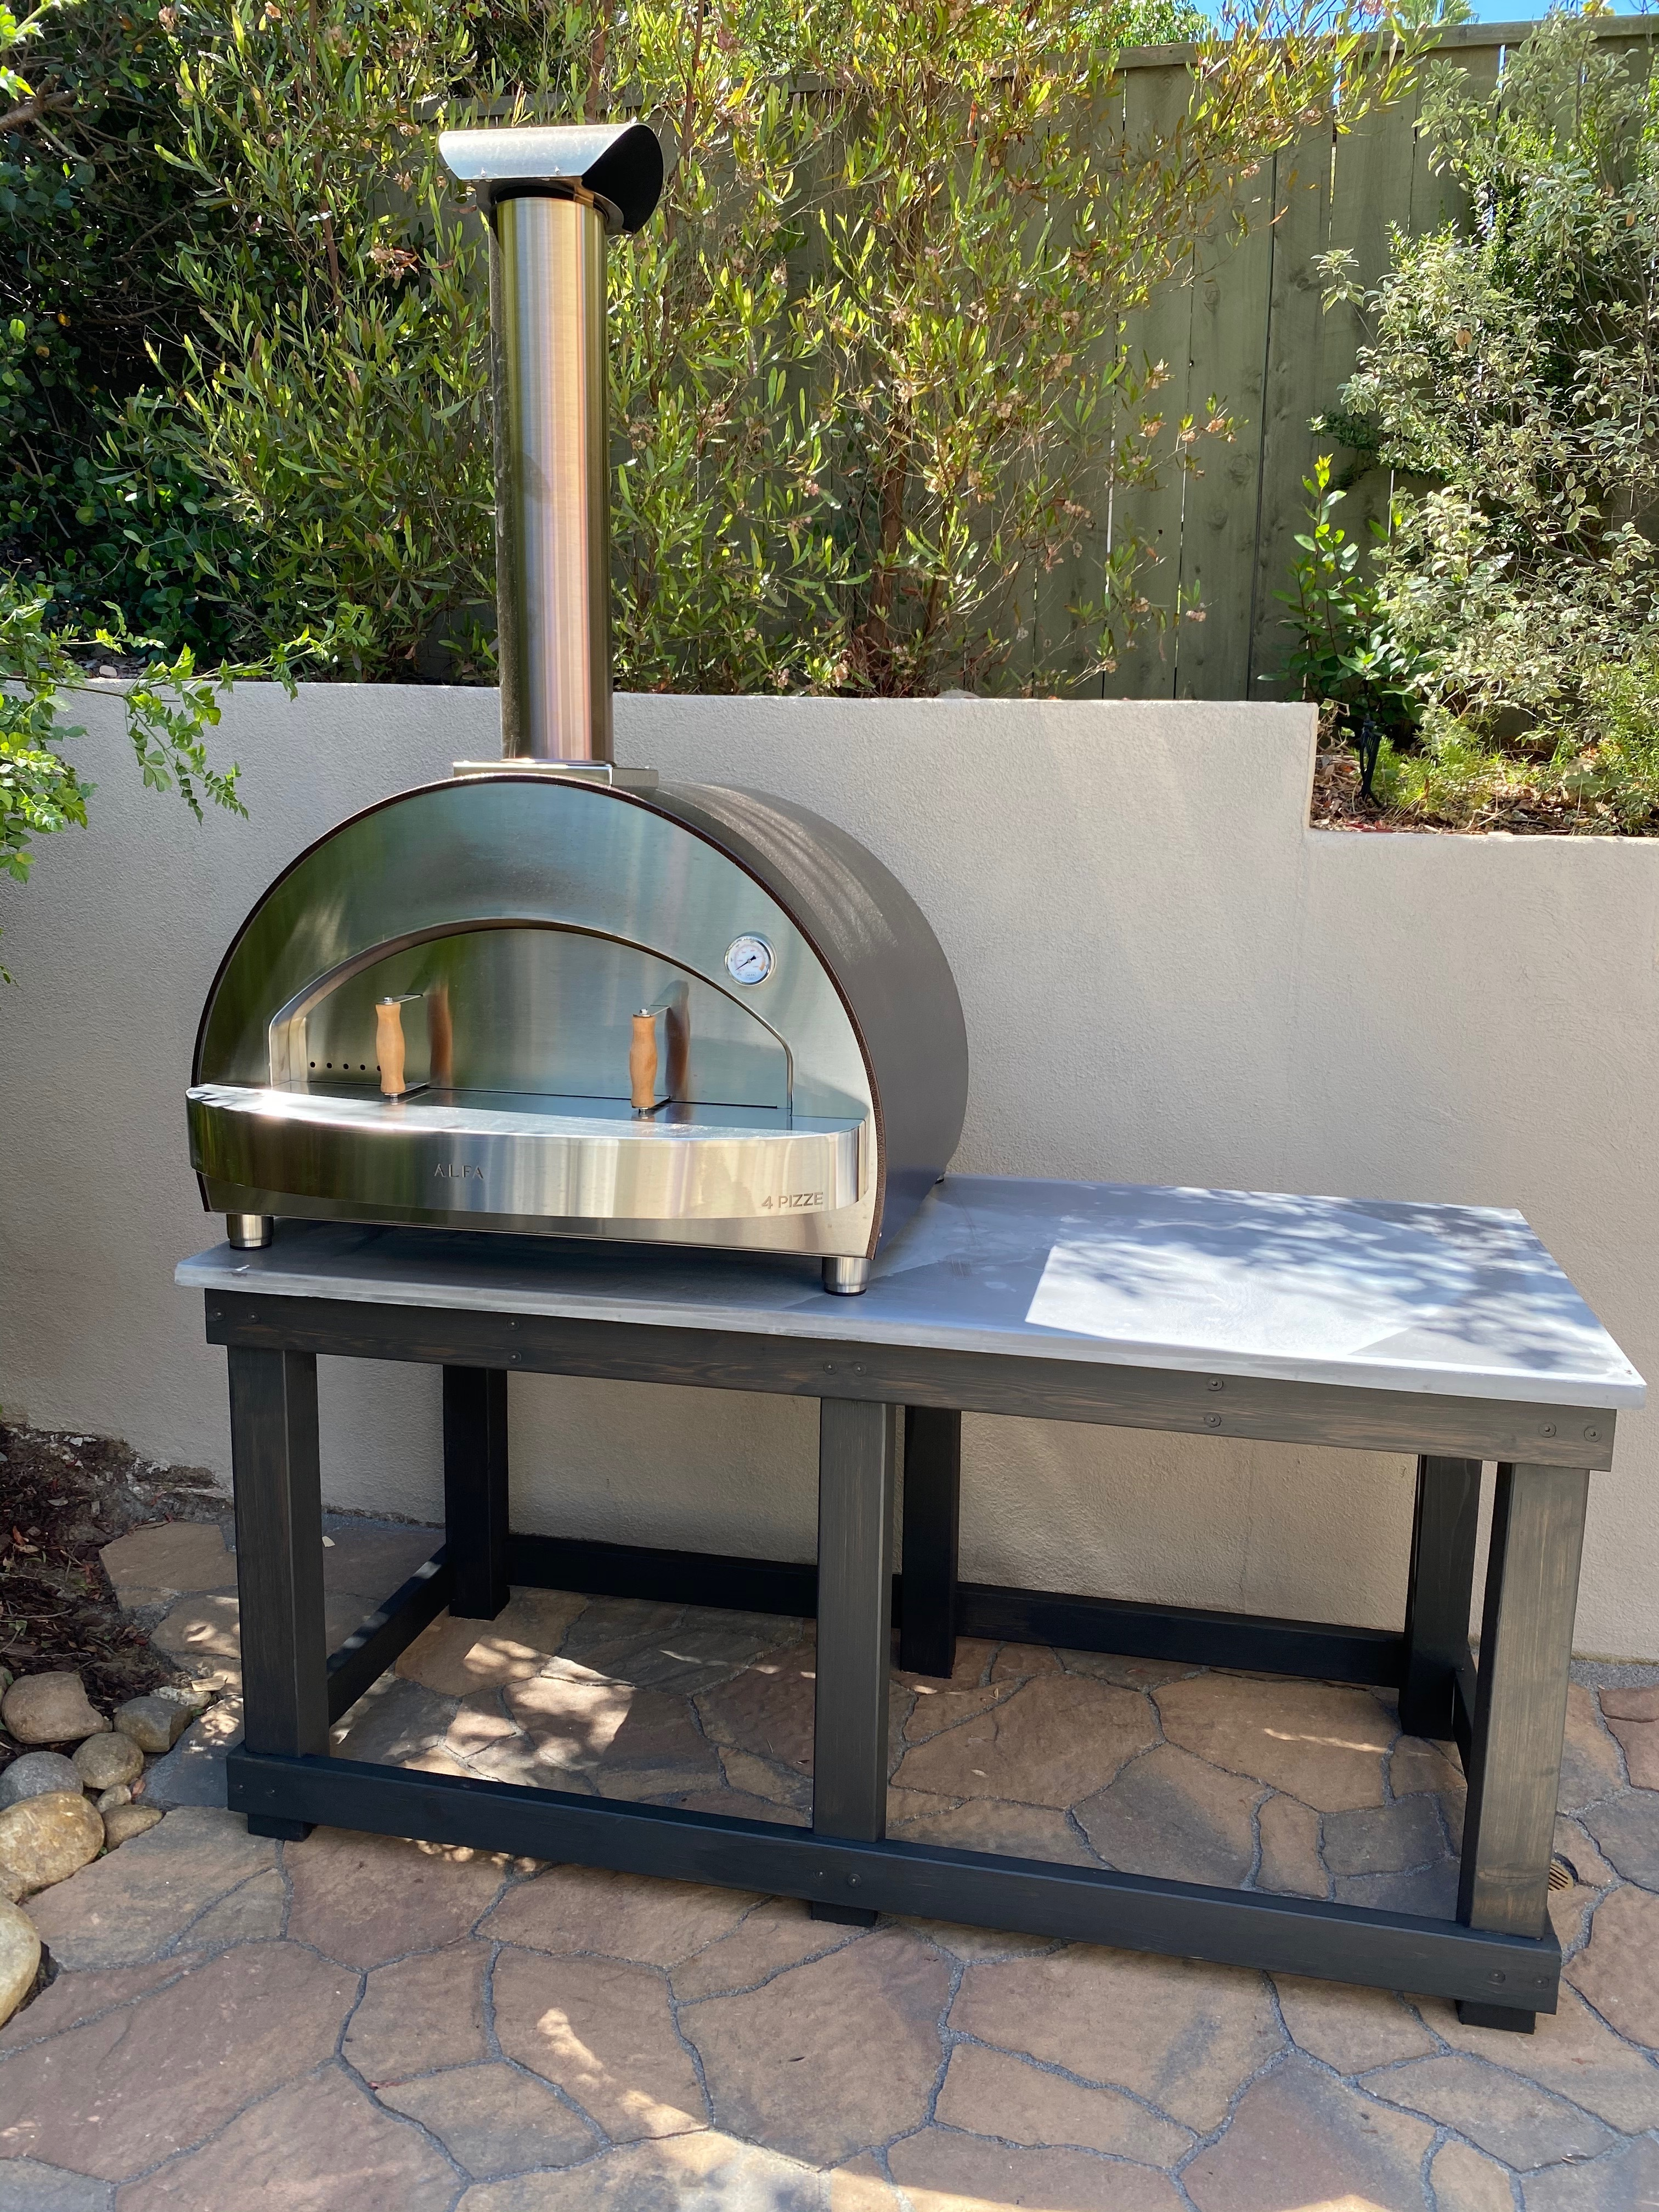 Alfa 5 Minuti Wood Fired Pizza Oven purchased from Chicago Outdoor Living